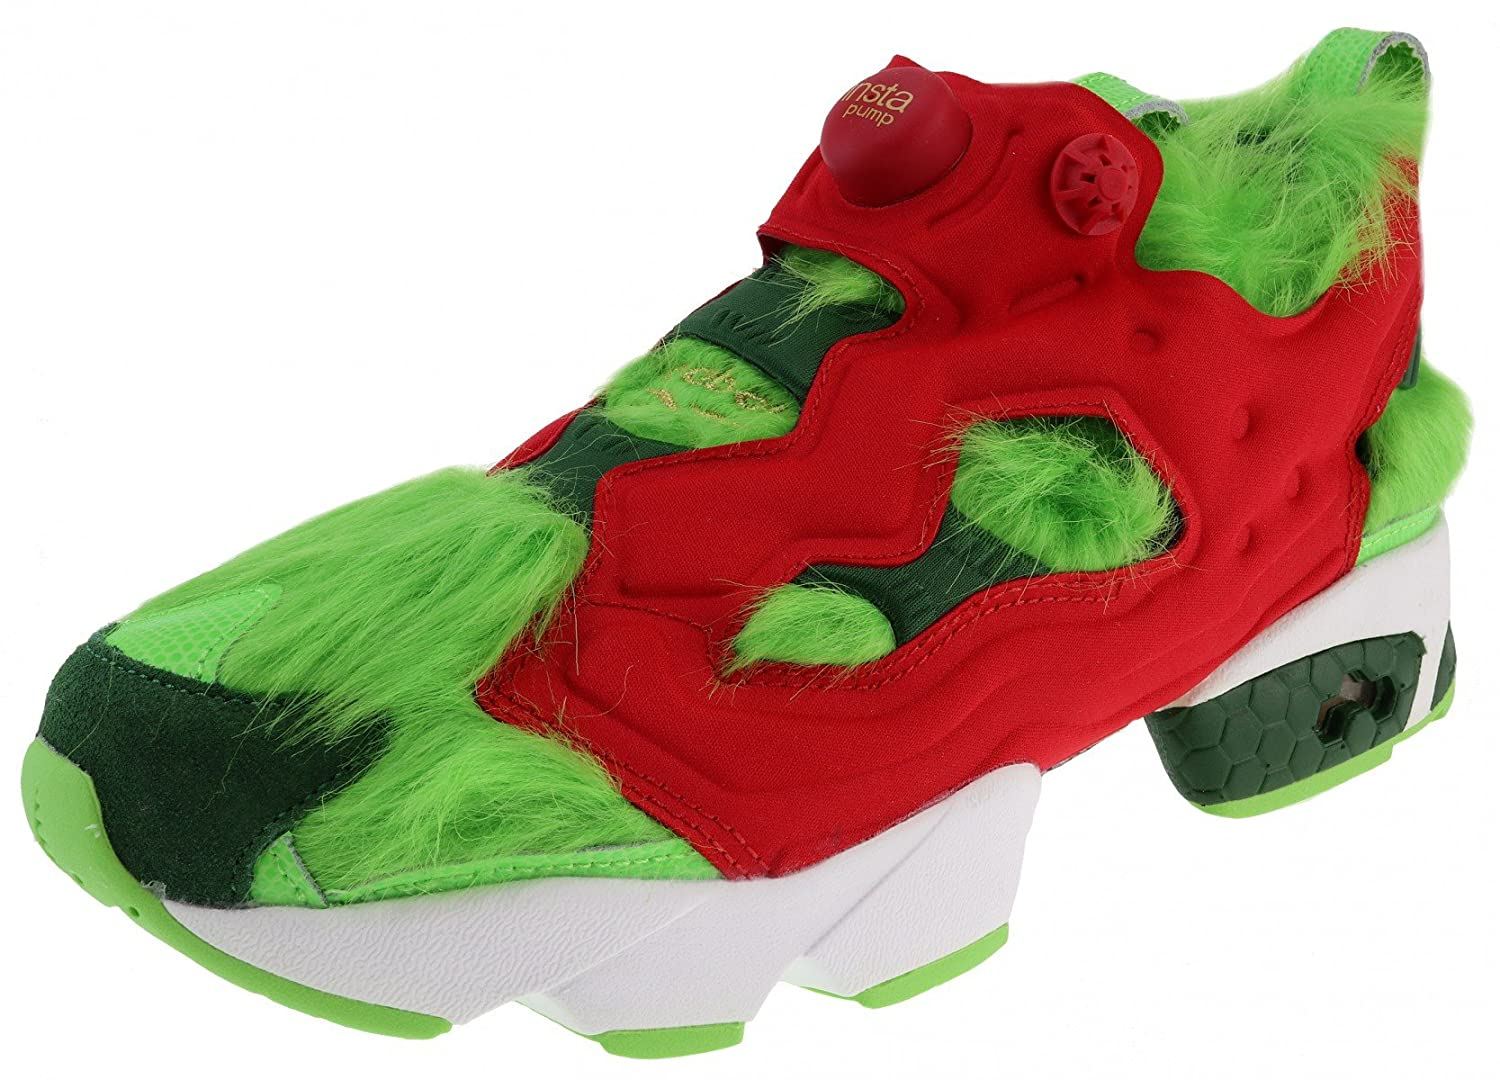 Reebok Instapump Fury CV Grinch, Solar Green-Scarlet-Pine Green-Gold Metallic-White 45.5_us12.0_uk11.0_cm30.0m|Green Red